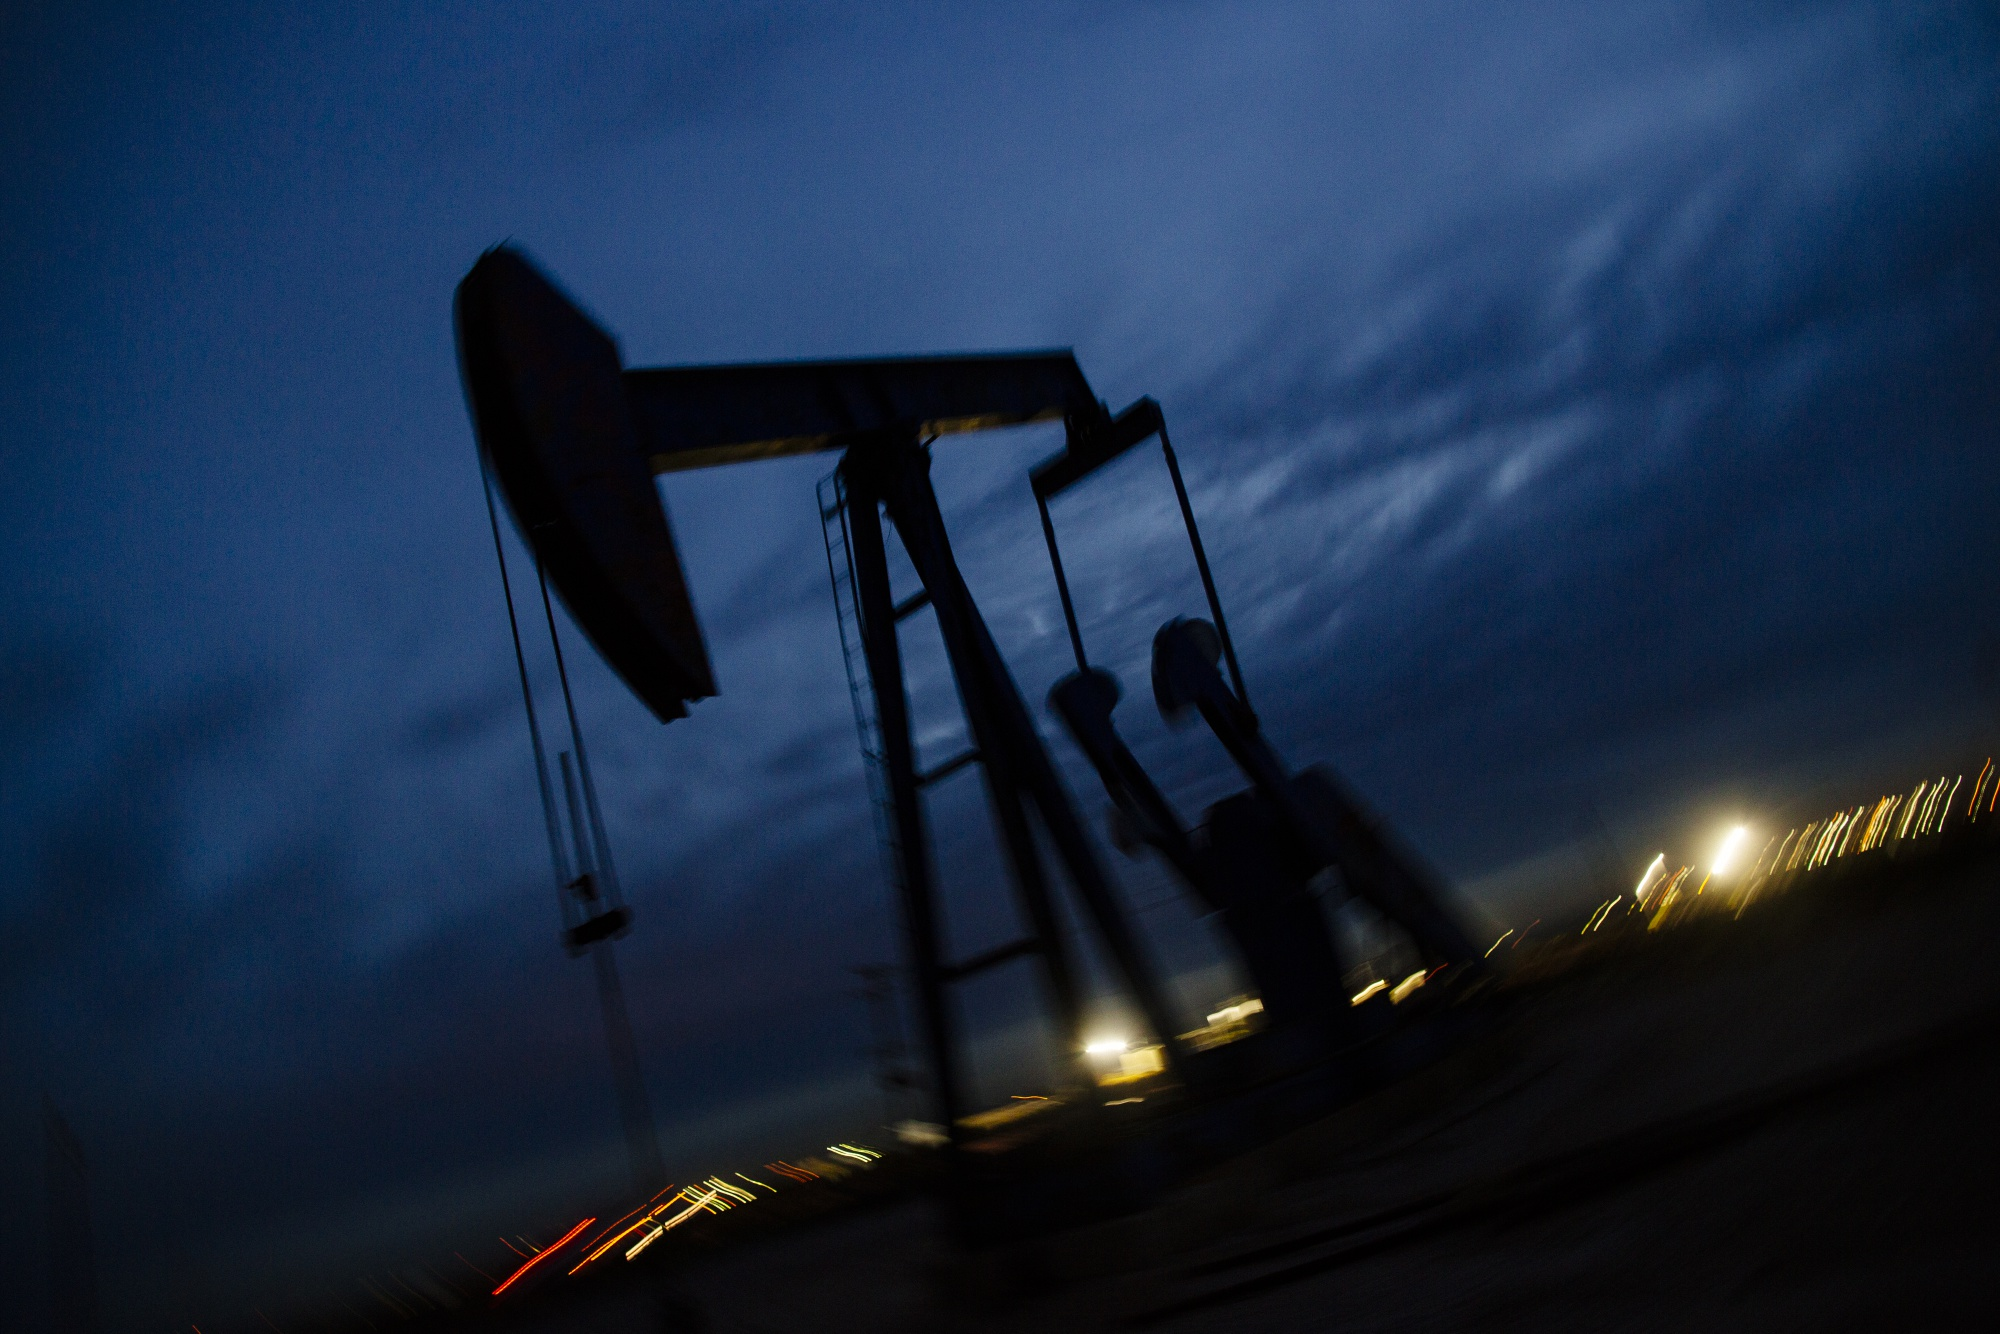 A pump jack stands at dusk in the Permian Basin area of Loving County, Texas, U.S., on Sunday, Dec. 16, 2018. Photographer: Angus Mordant/Bloomberg